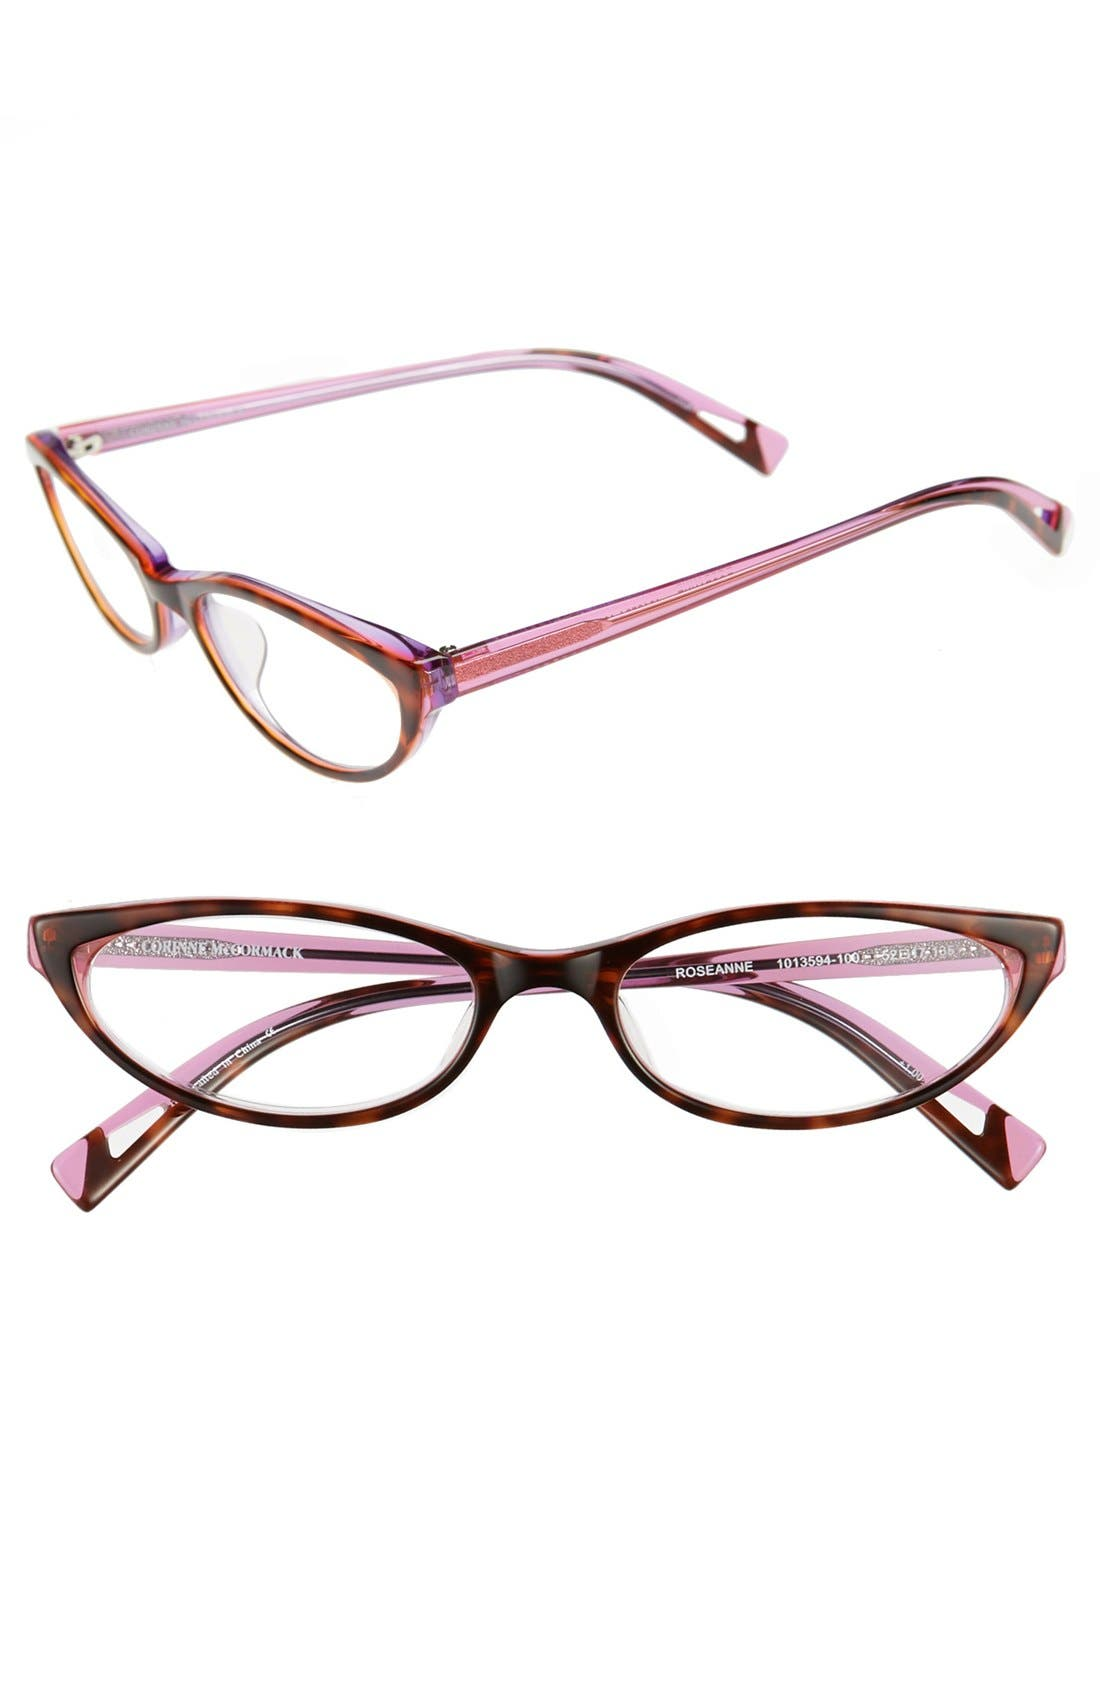 Alternate Image 1 Selected - Wildfox 'Catfarer Spectacle' 53mm Optical Glasses